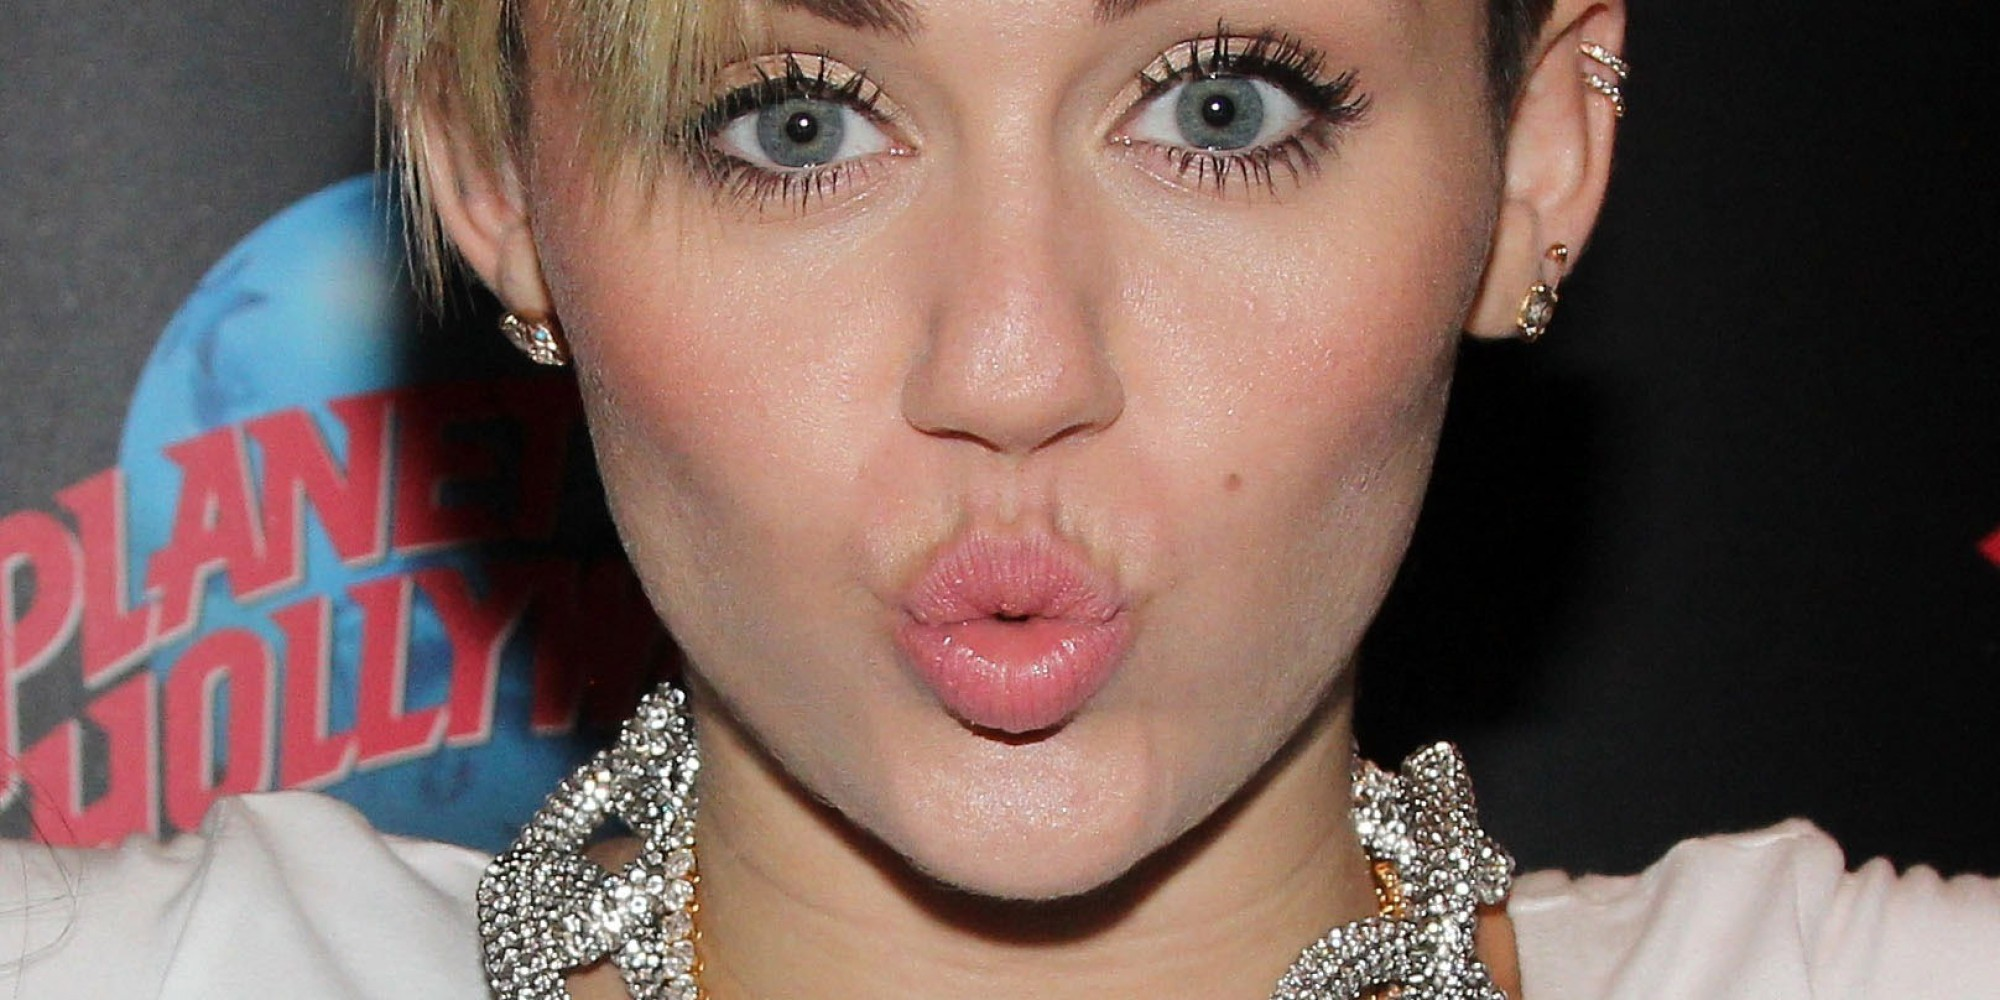 Dr. Luke Owes Miley Cyrus A '$10,000 Toilet' | HuffPost Miley Cyrus